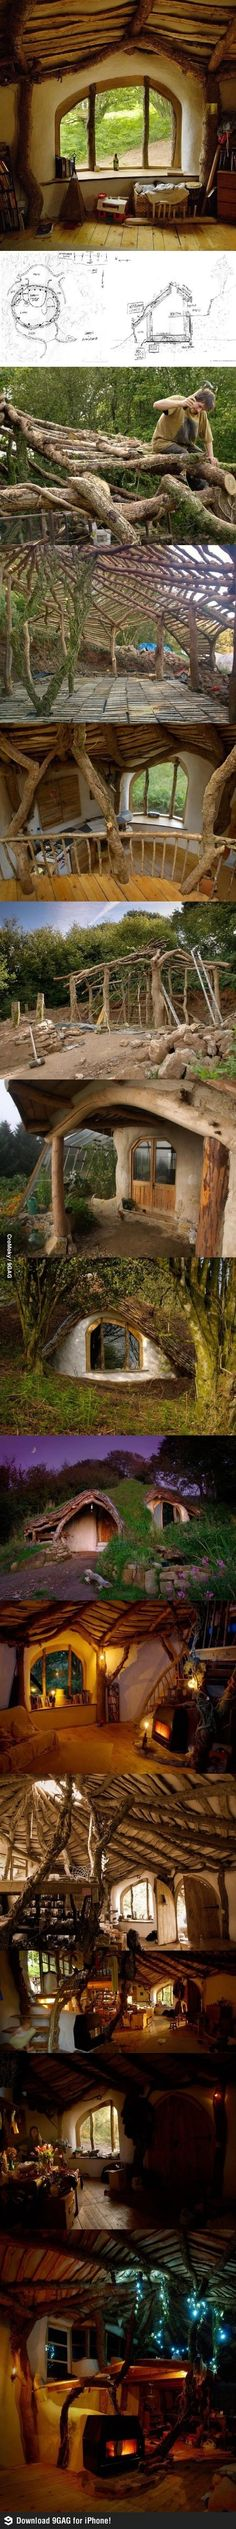 How to build a HOBBIT house – cool!